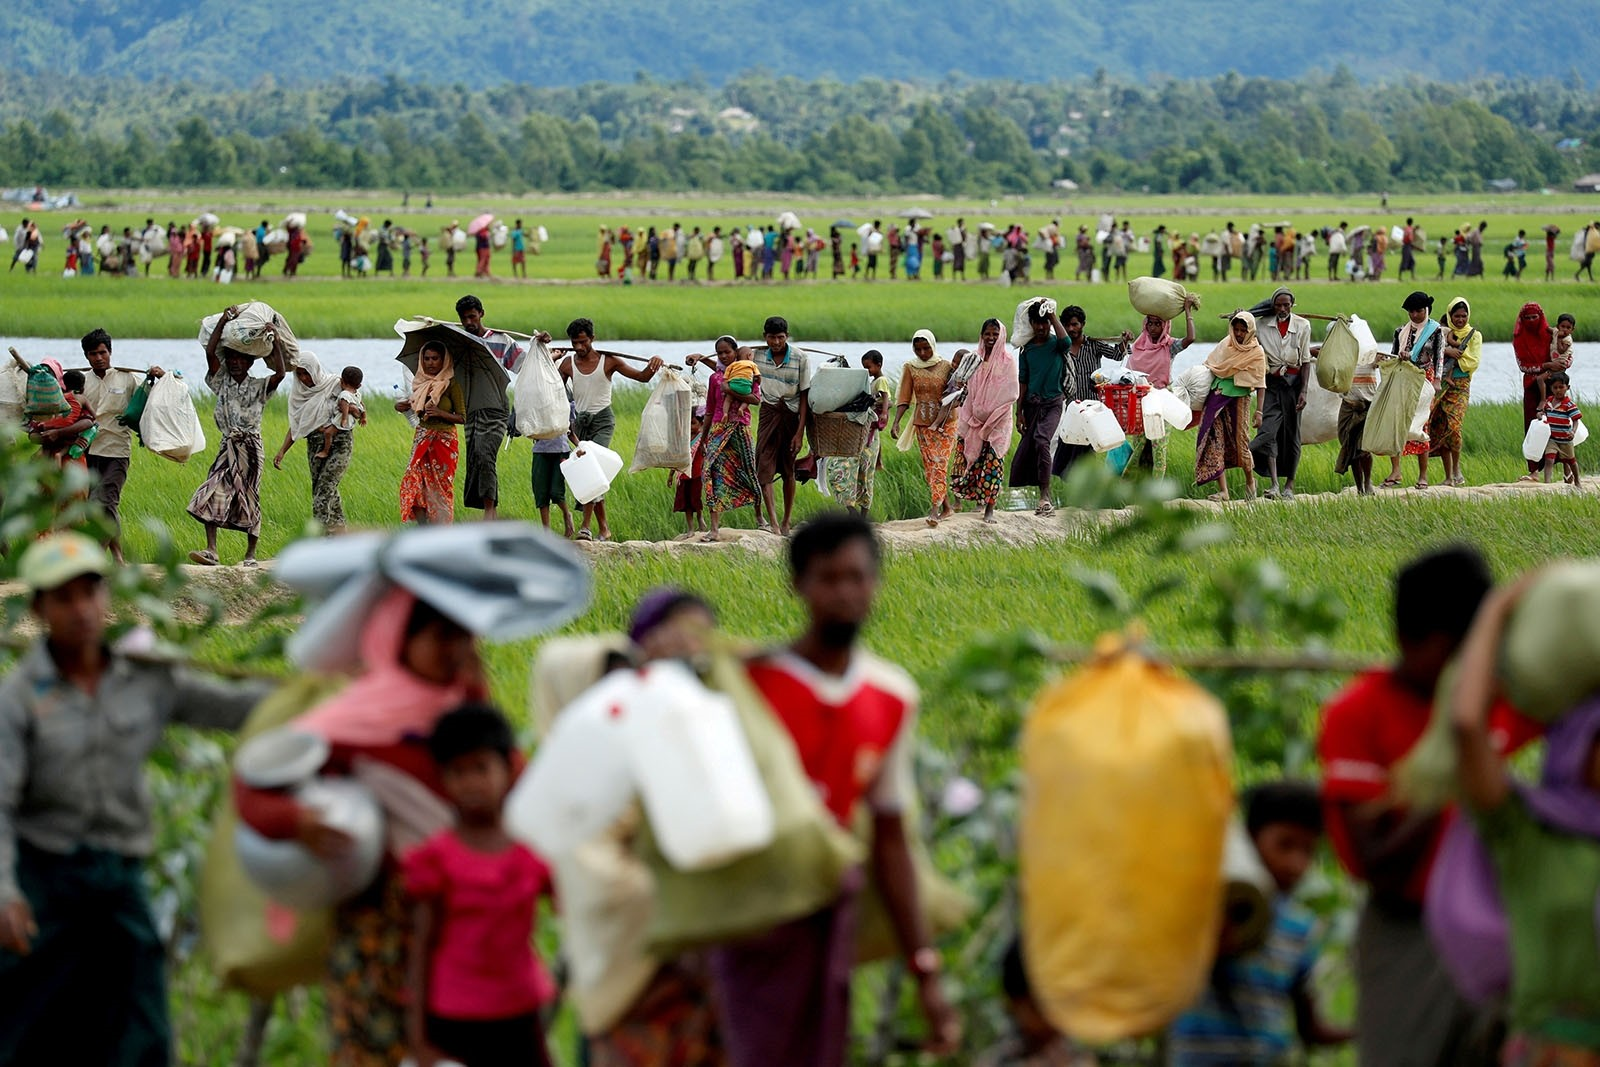 Rohingya refugees, who crossed the border from Myanmar two days before, walk after they received permission from the Bangladeshi army to continue on to the refugee camps, in Palang Khali, near Cox's Bazar, Bangladesh October 19, 2017.